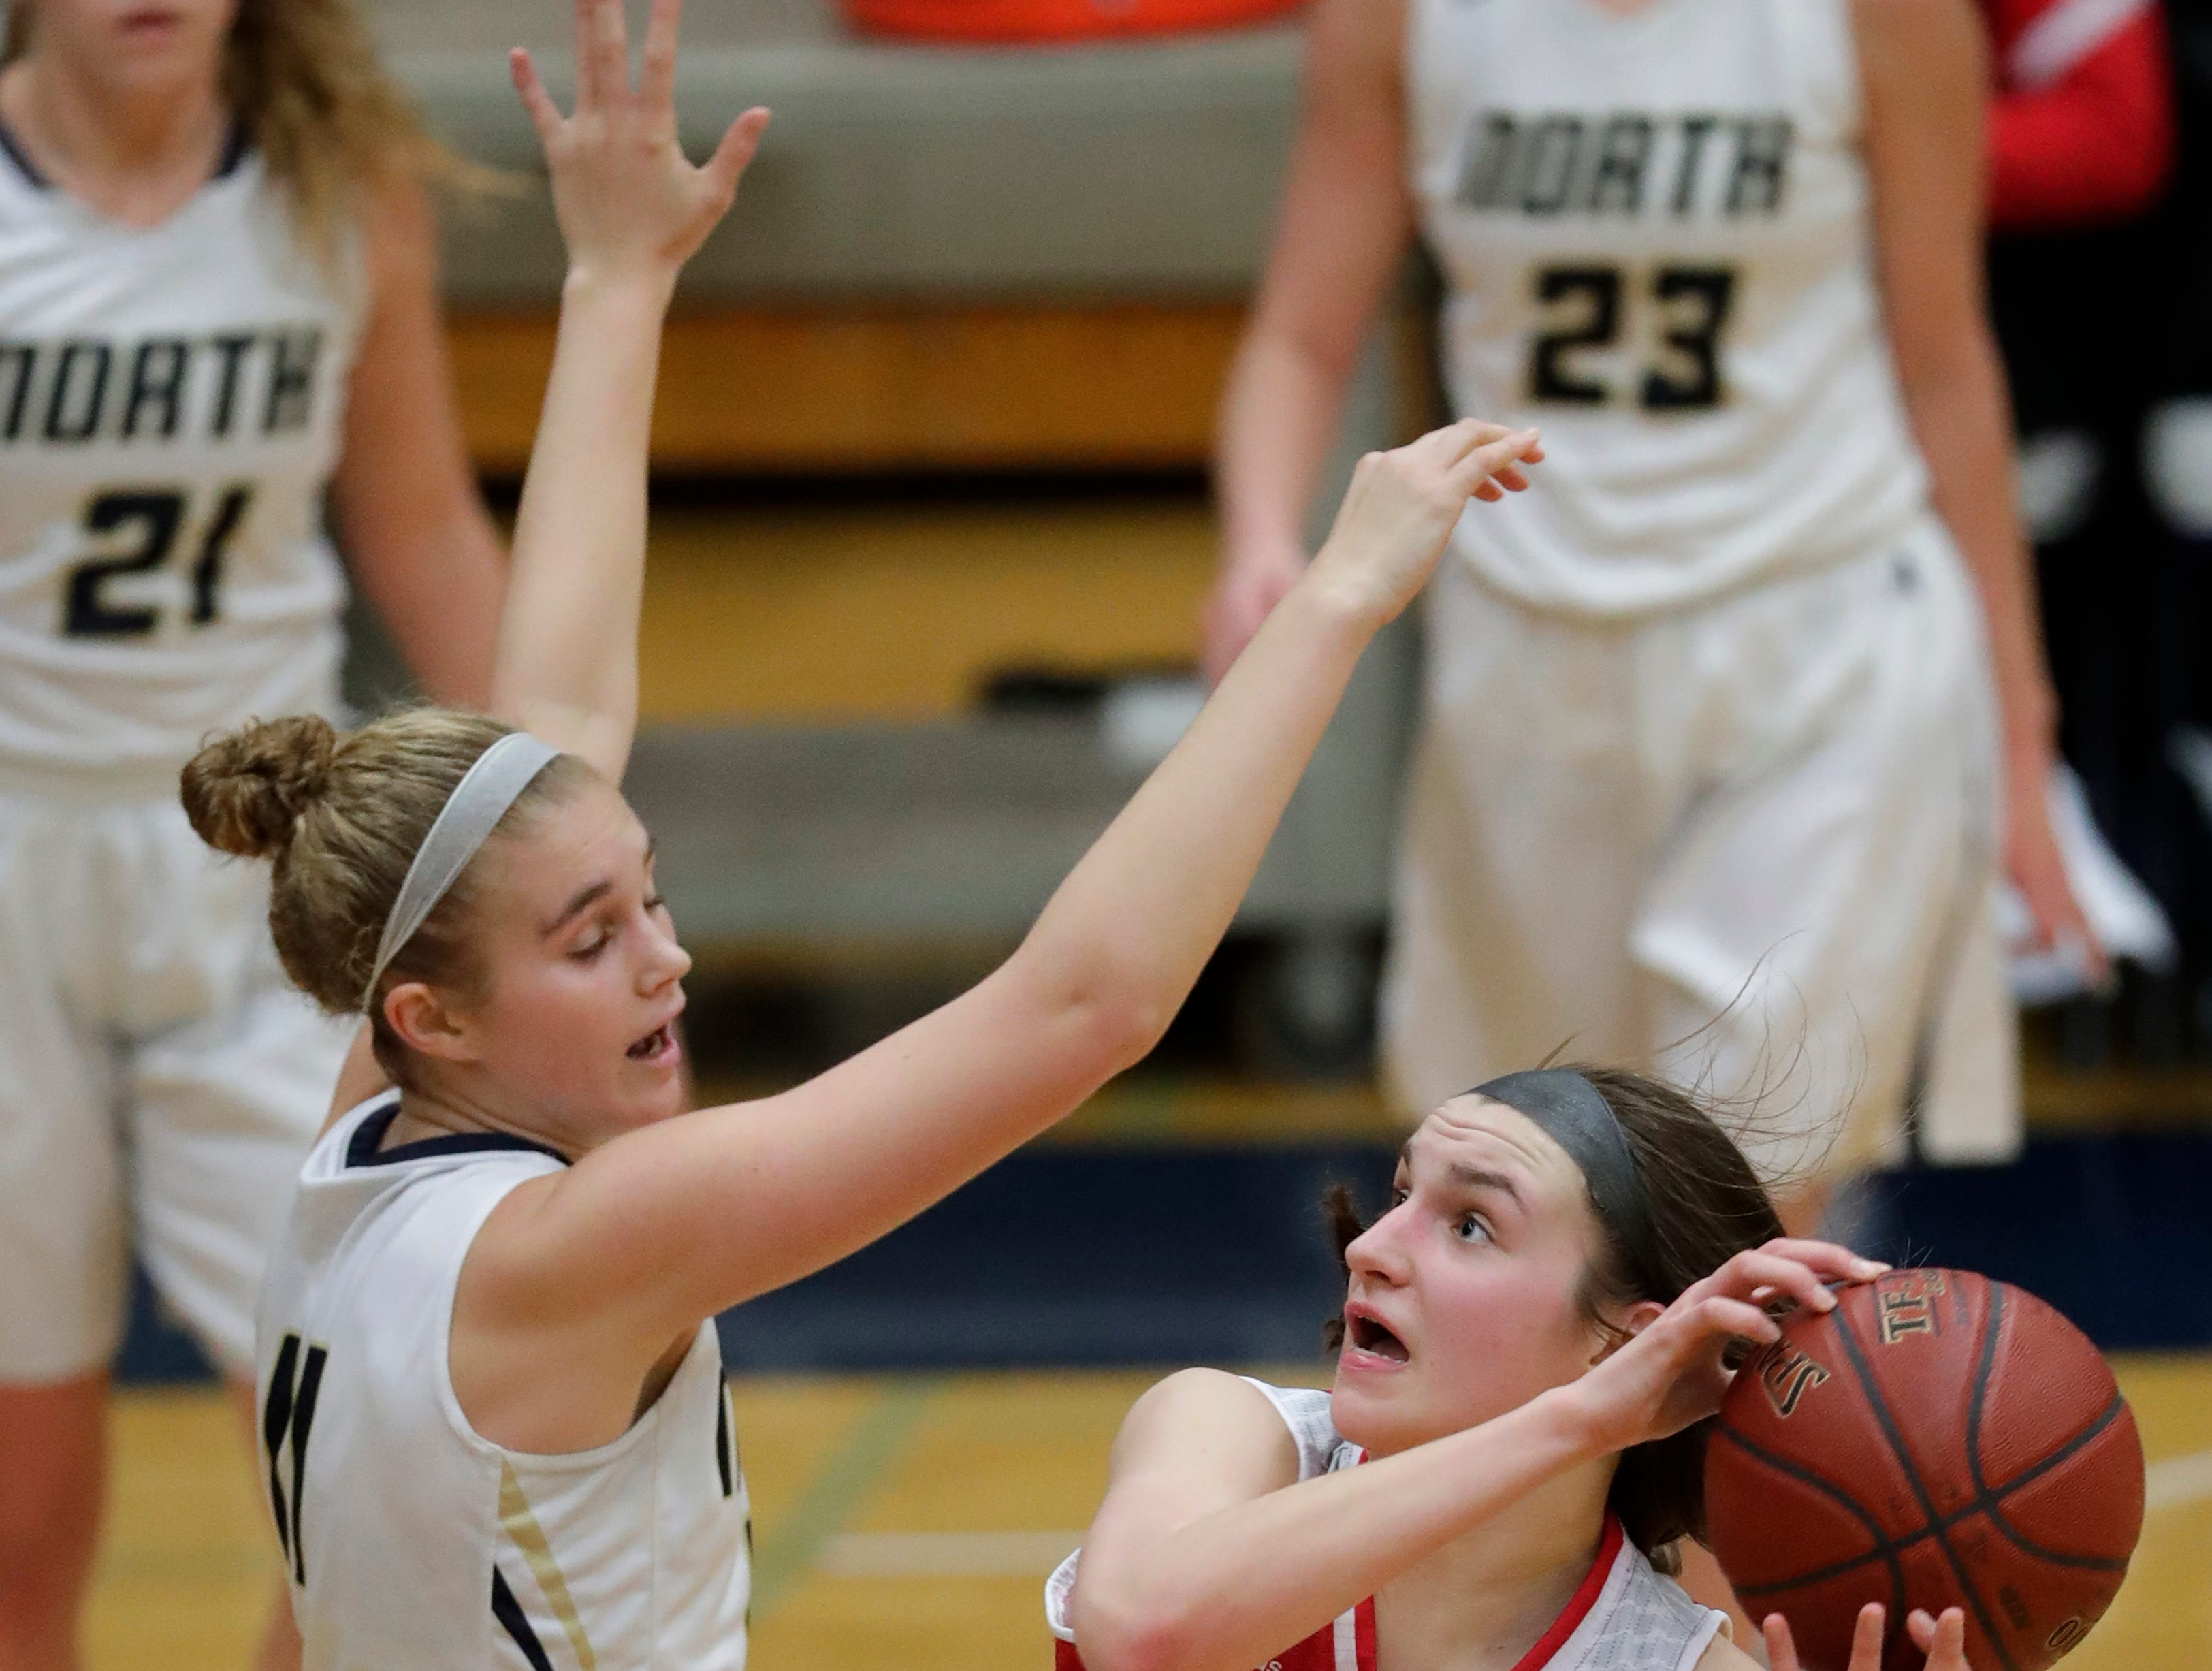 Appleton North High School's Emma Erickson (11) defends against Kimberly High School's Maddy Schreiber (34) during their girls basketball game Tuesday, January 8, 2019, in Appleton, Wis. 